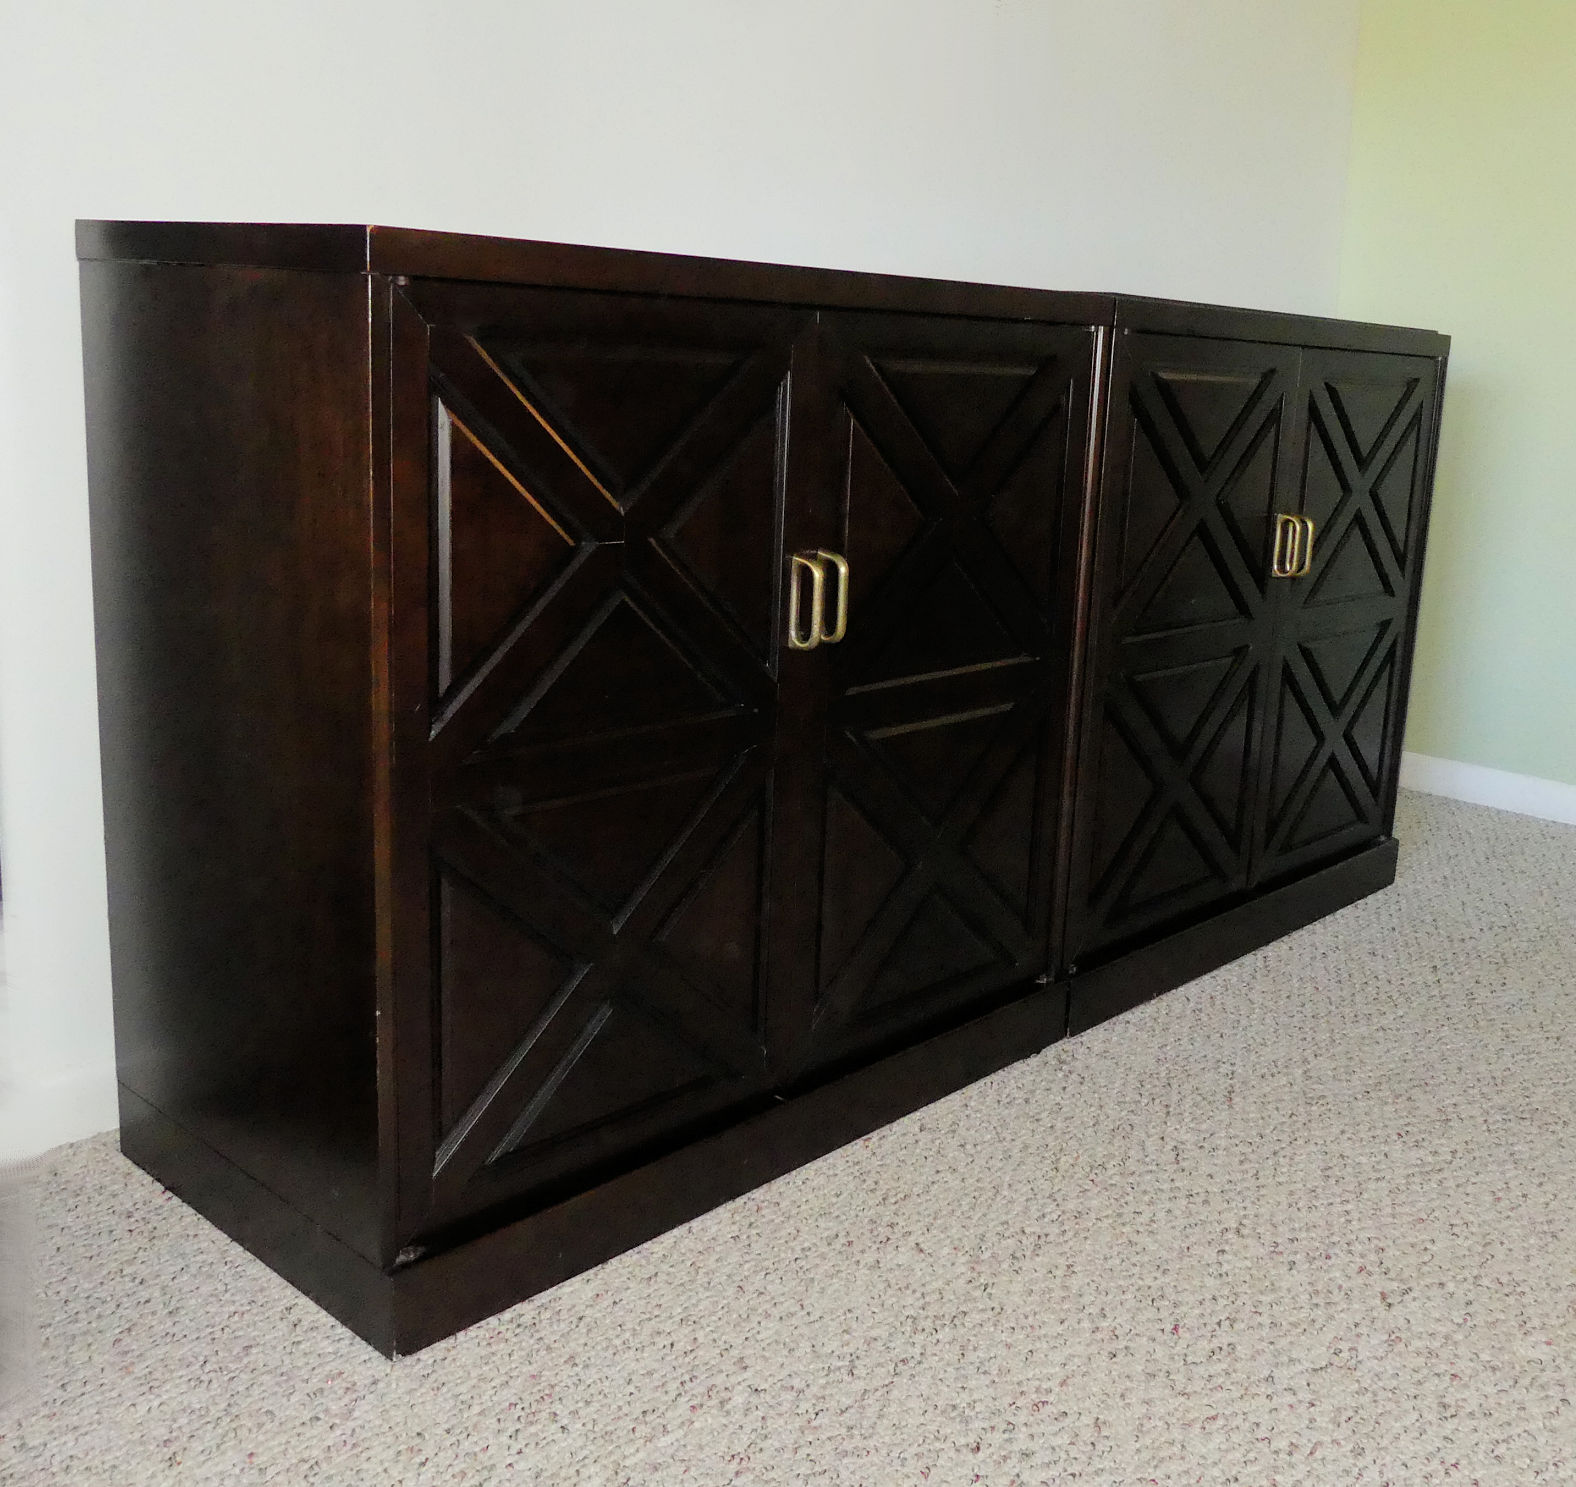 2-Piece Mahogany Dry Bar Cabinet Set Attributed to Johnson Furniture for Directional Industries